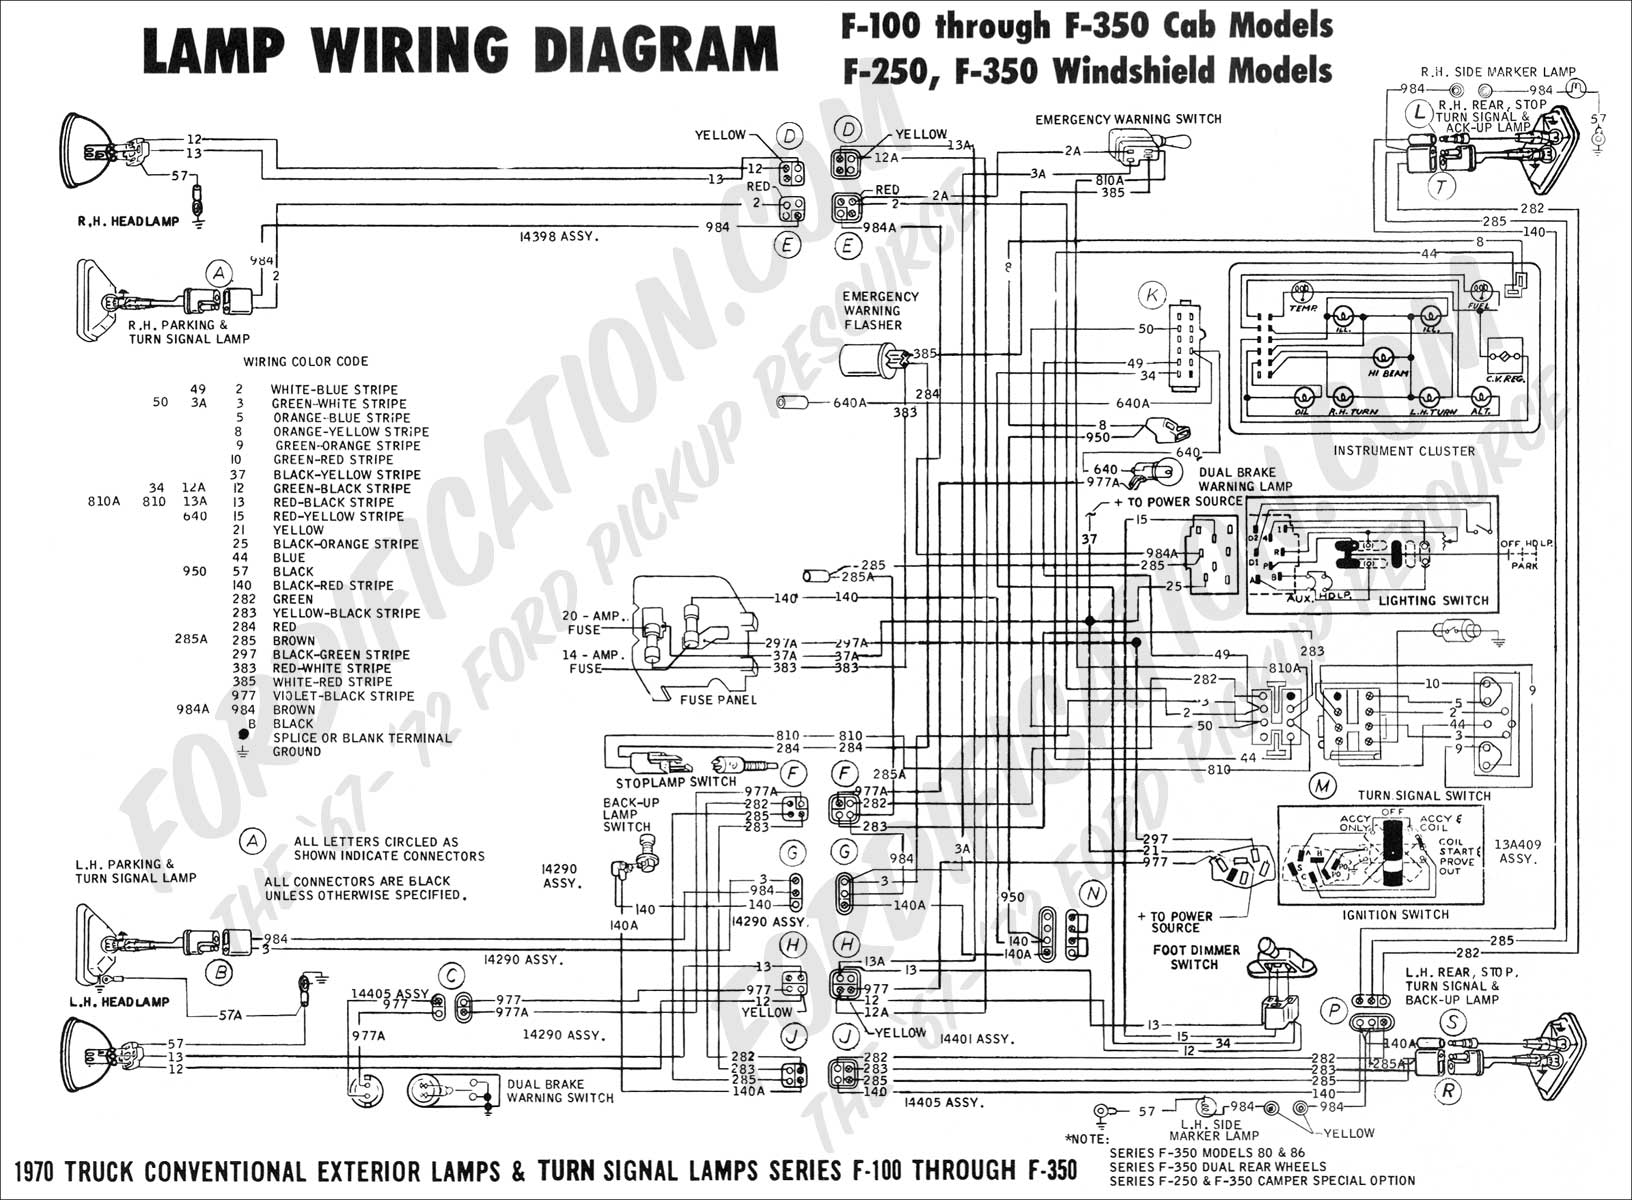 wiring diagram_70ext lights01 ford truck technical drawings and schematics section h wiring